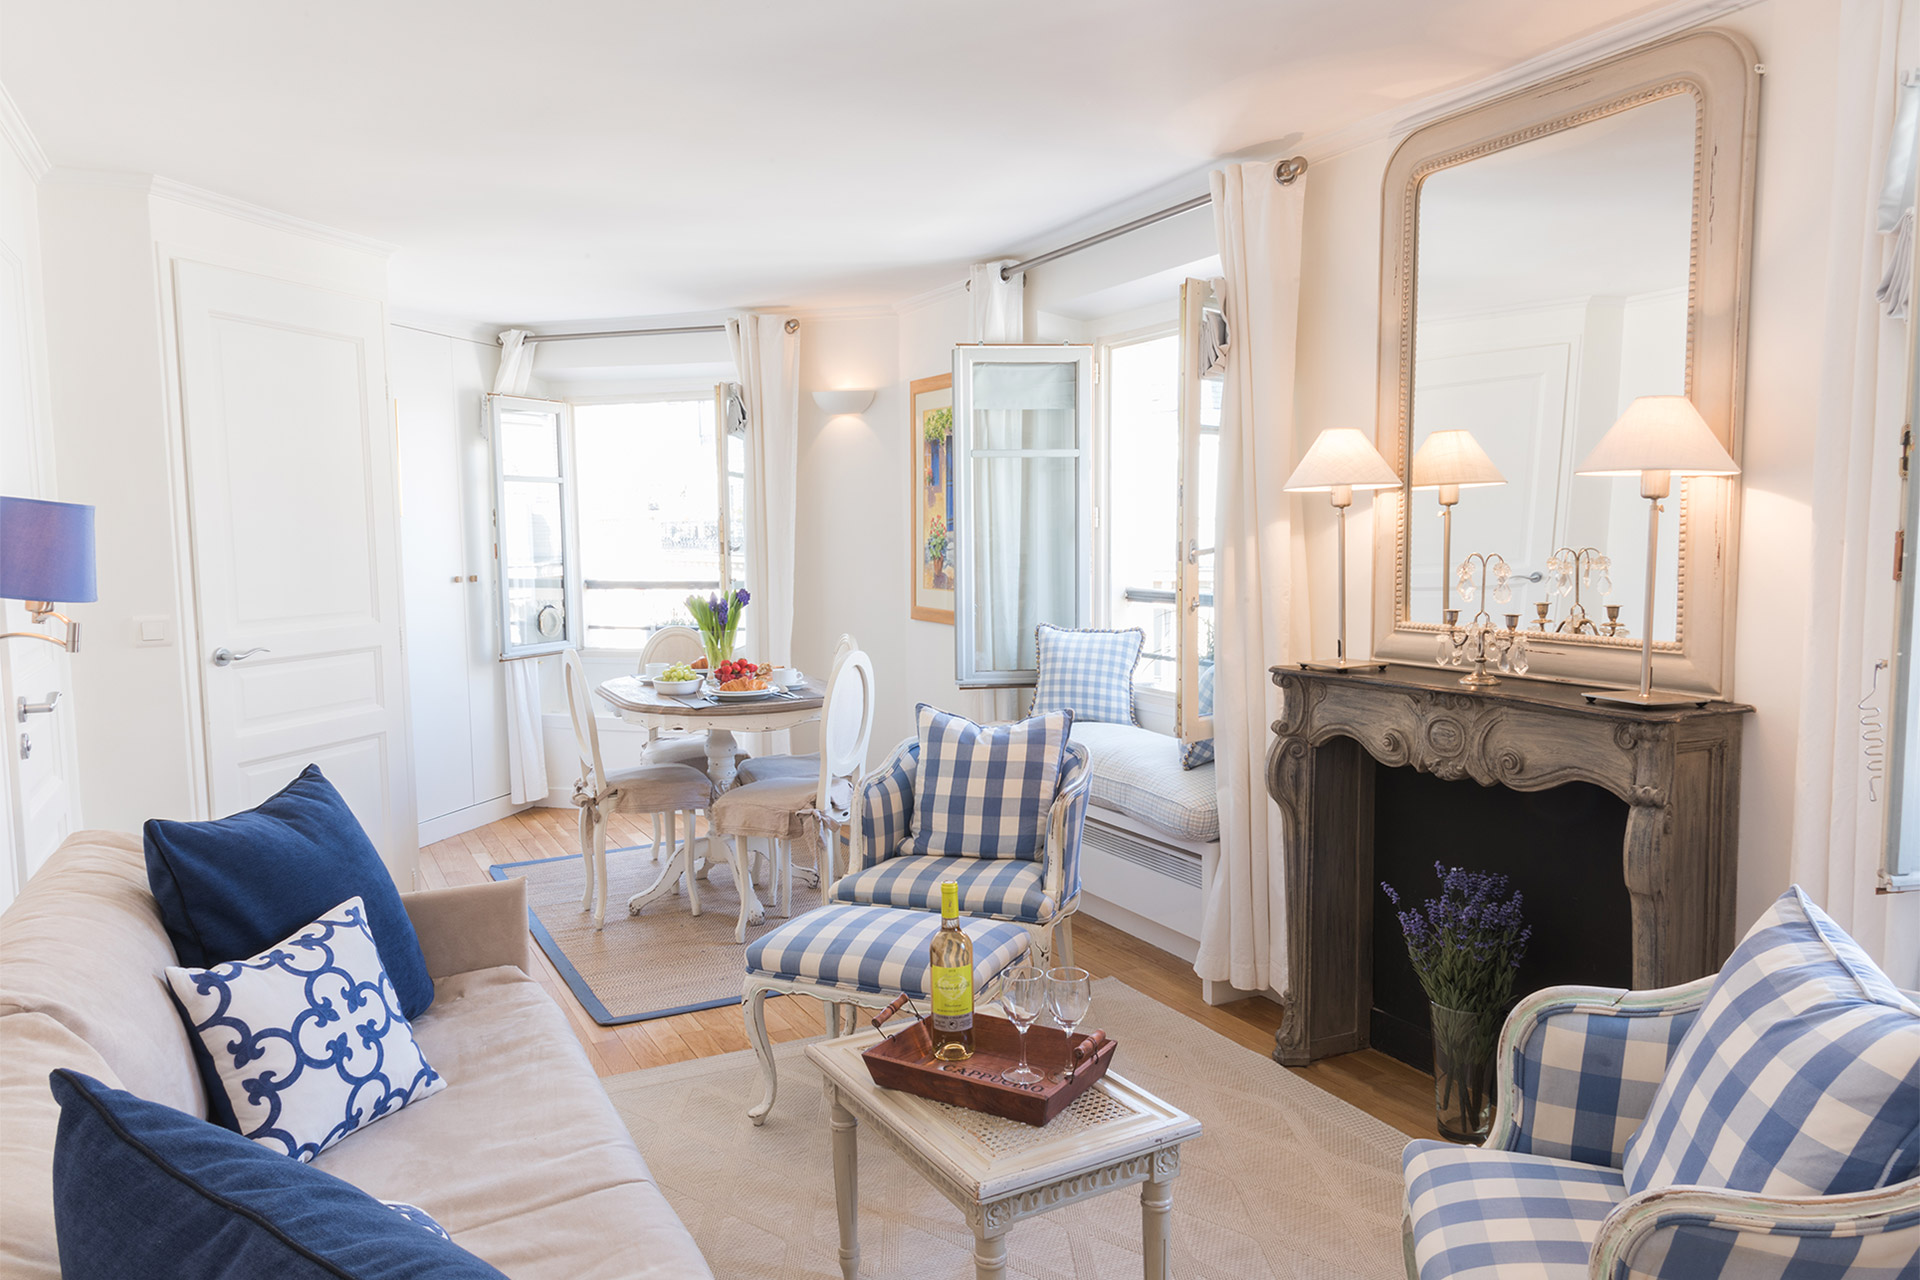 Book 1 bedroom paris holiday apartment near rue cler paris perfect sale